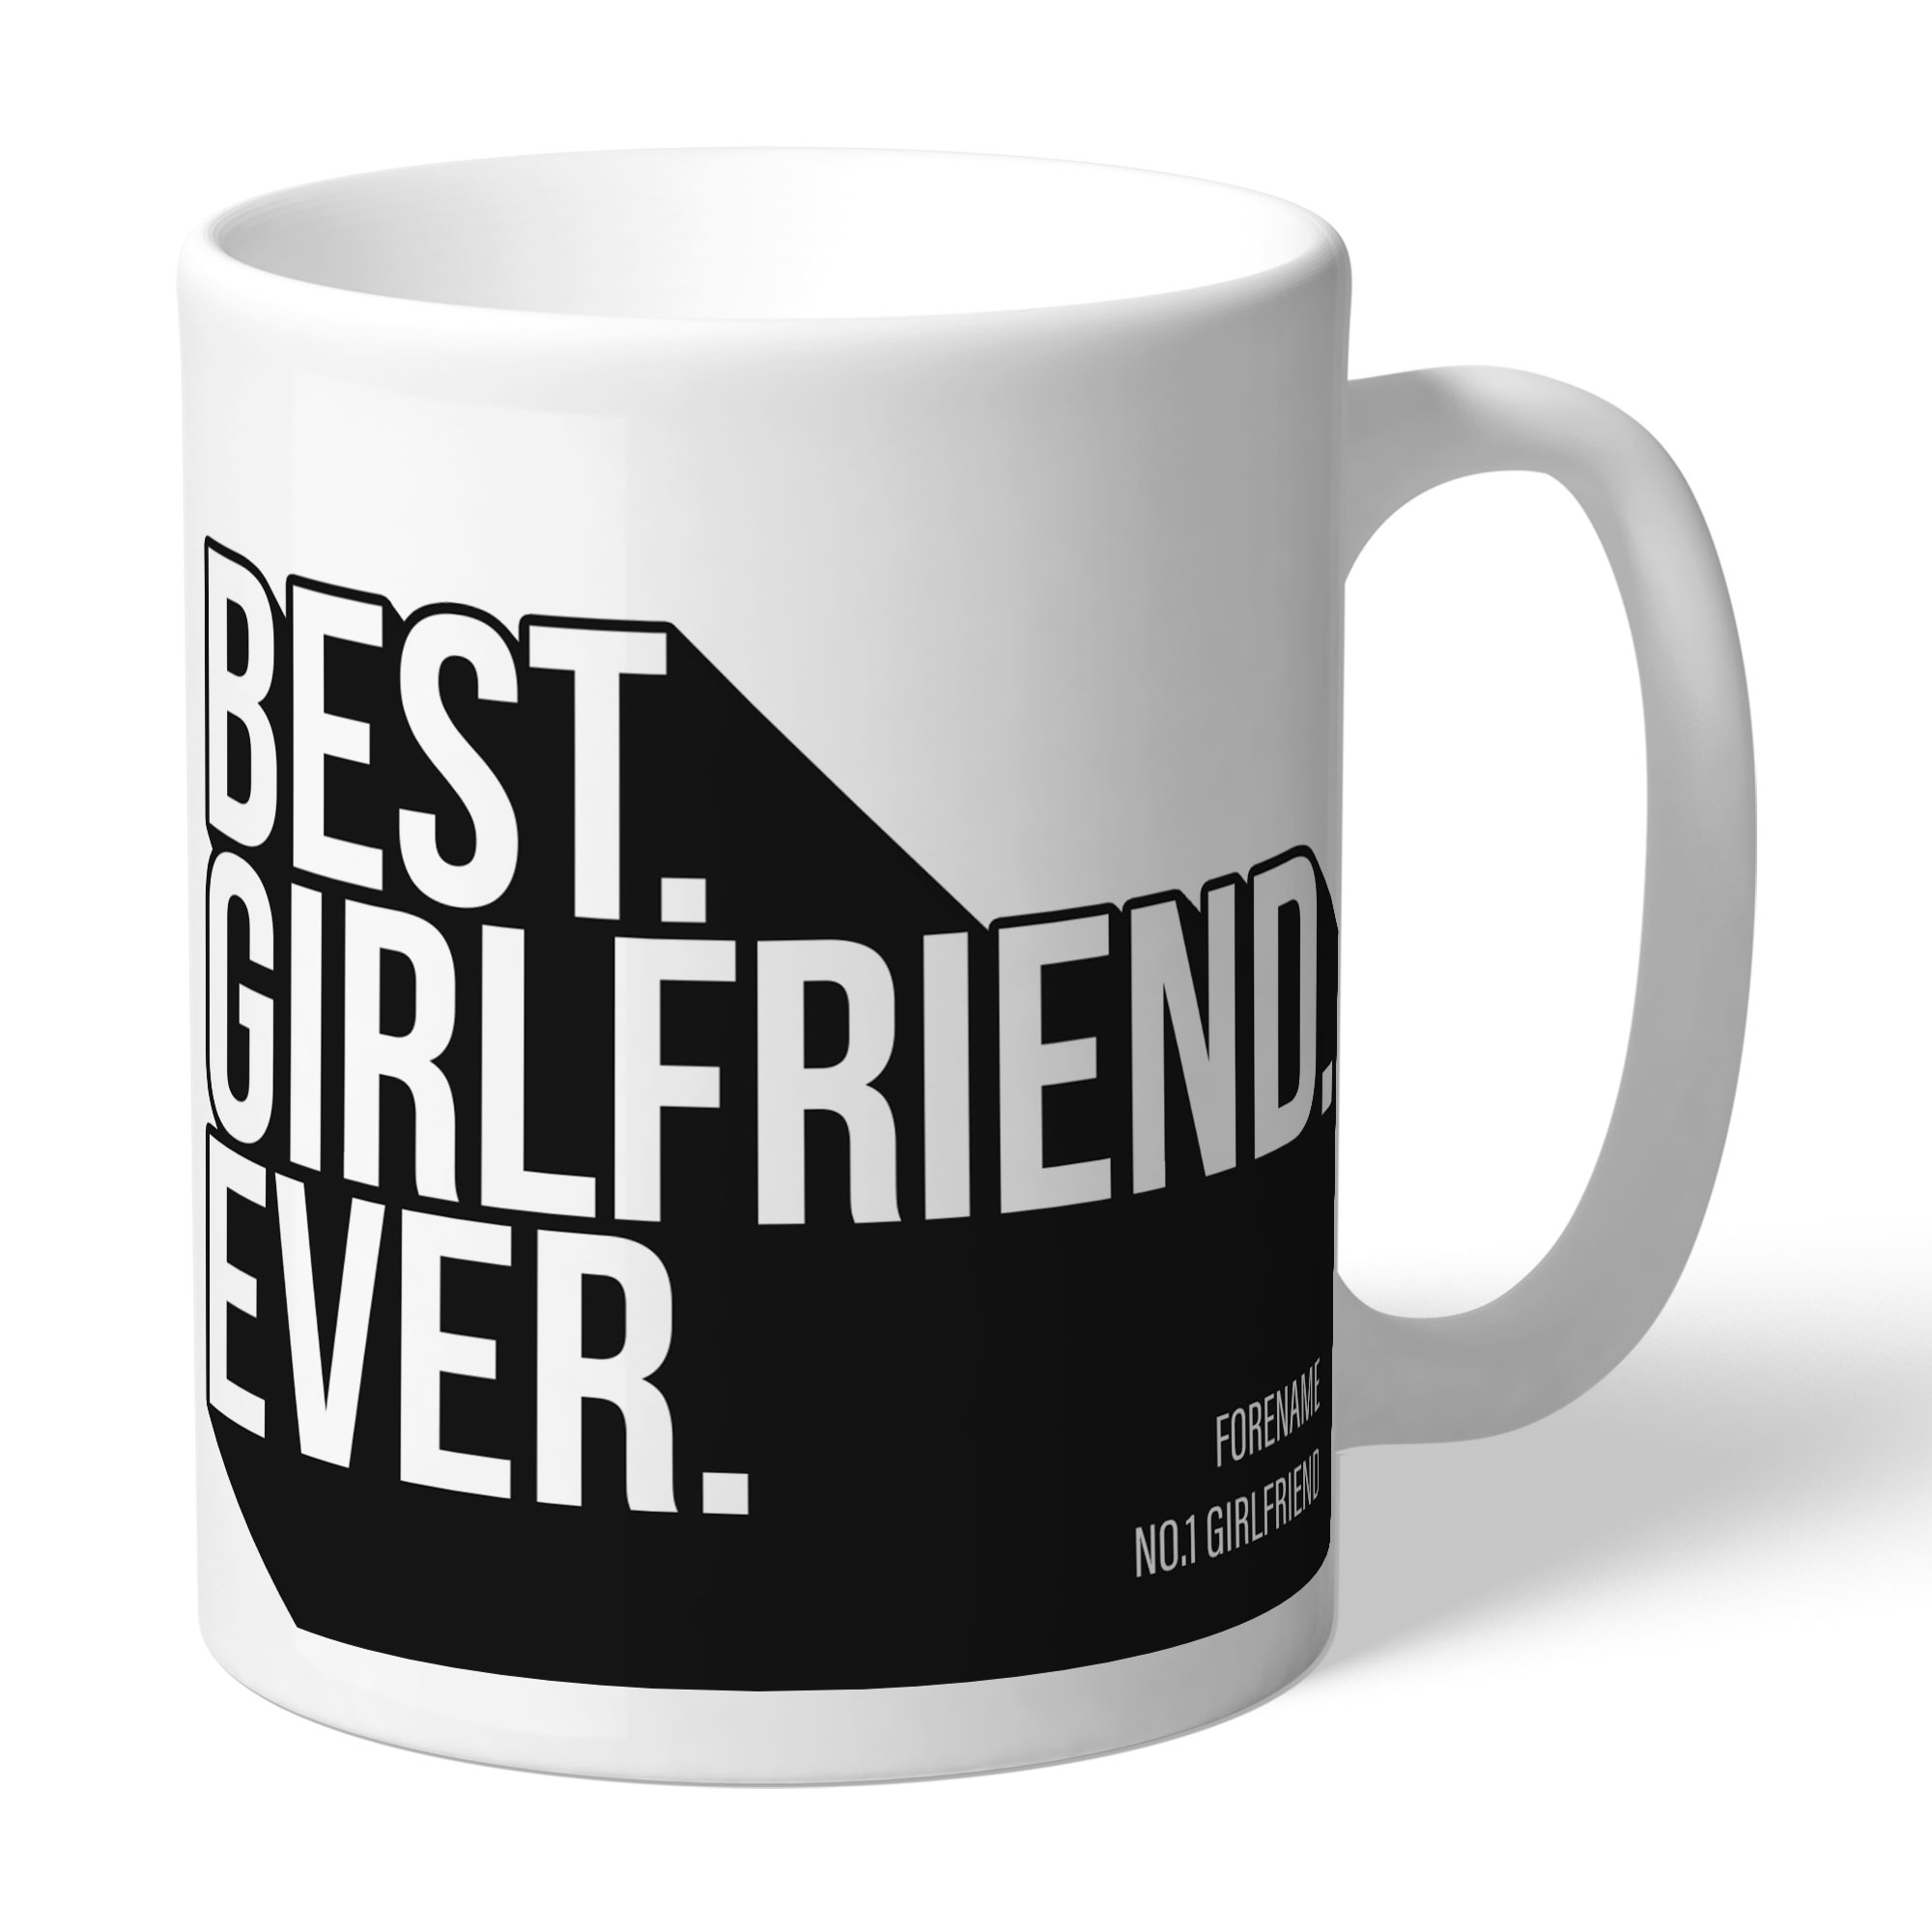 Swansea City AFC Best Girlfriend Ever Mug